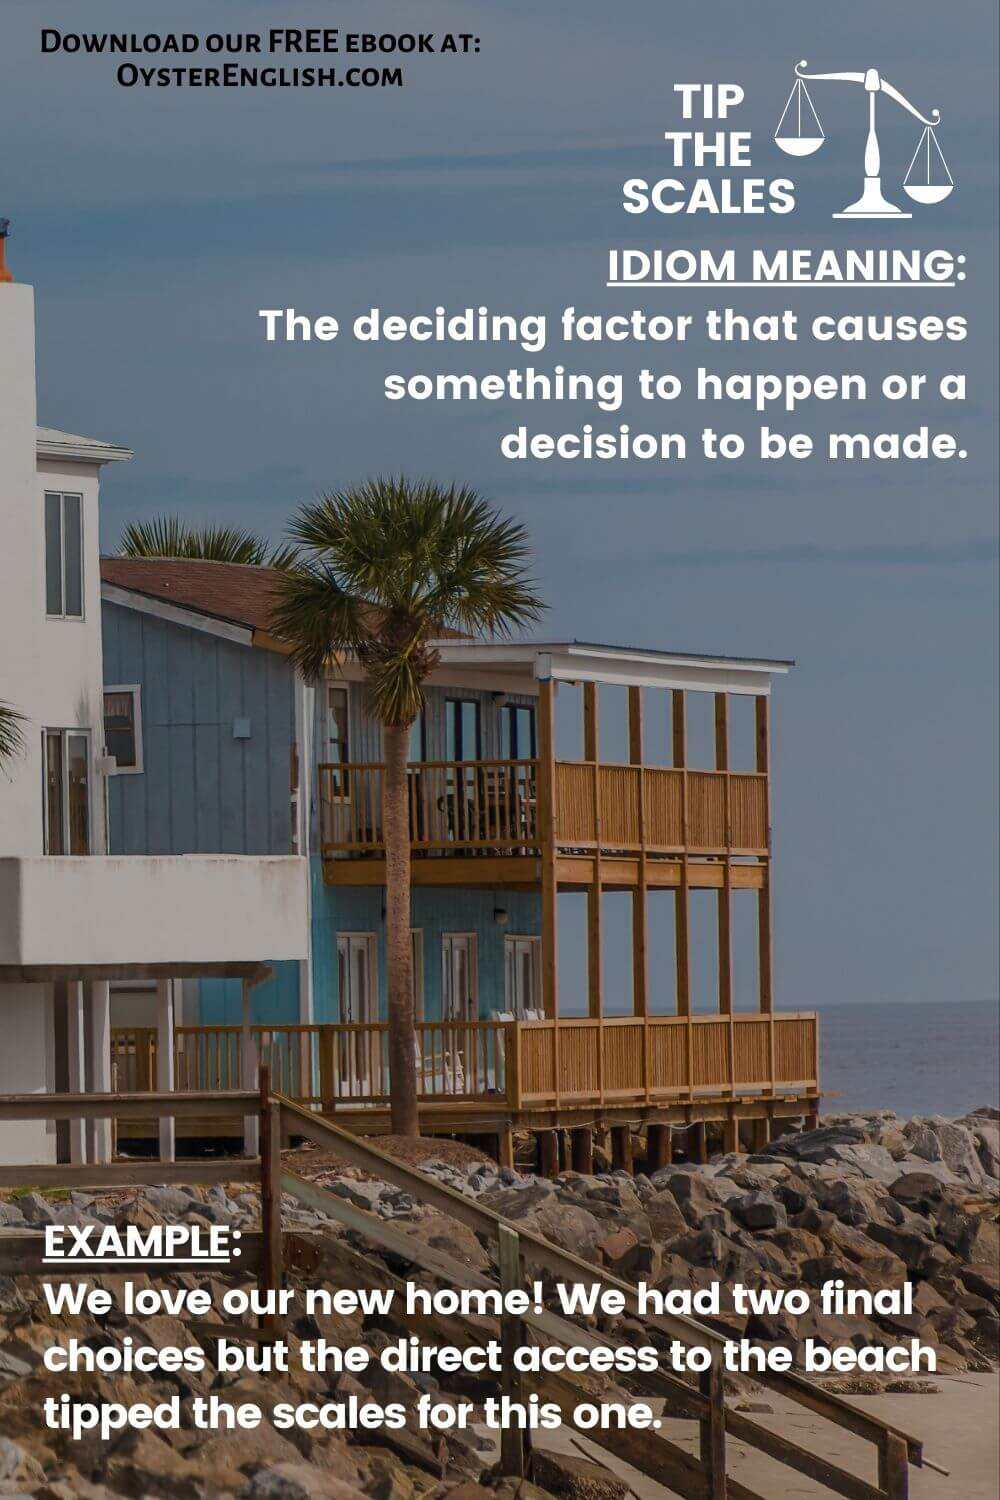 Picture of a beautiful beachfront home to depict the idiom